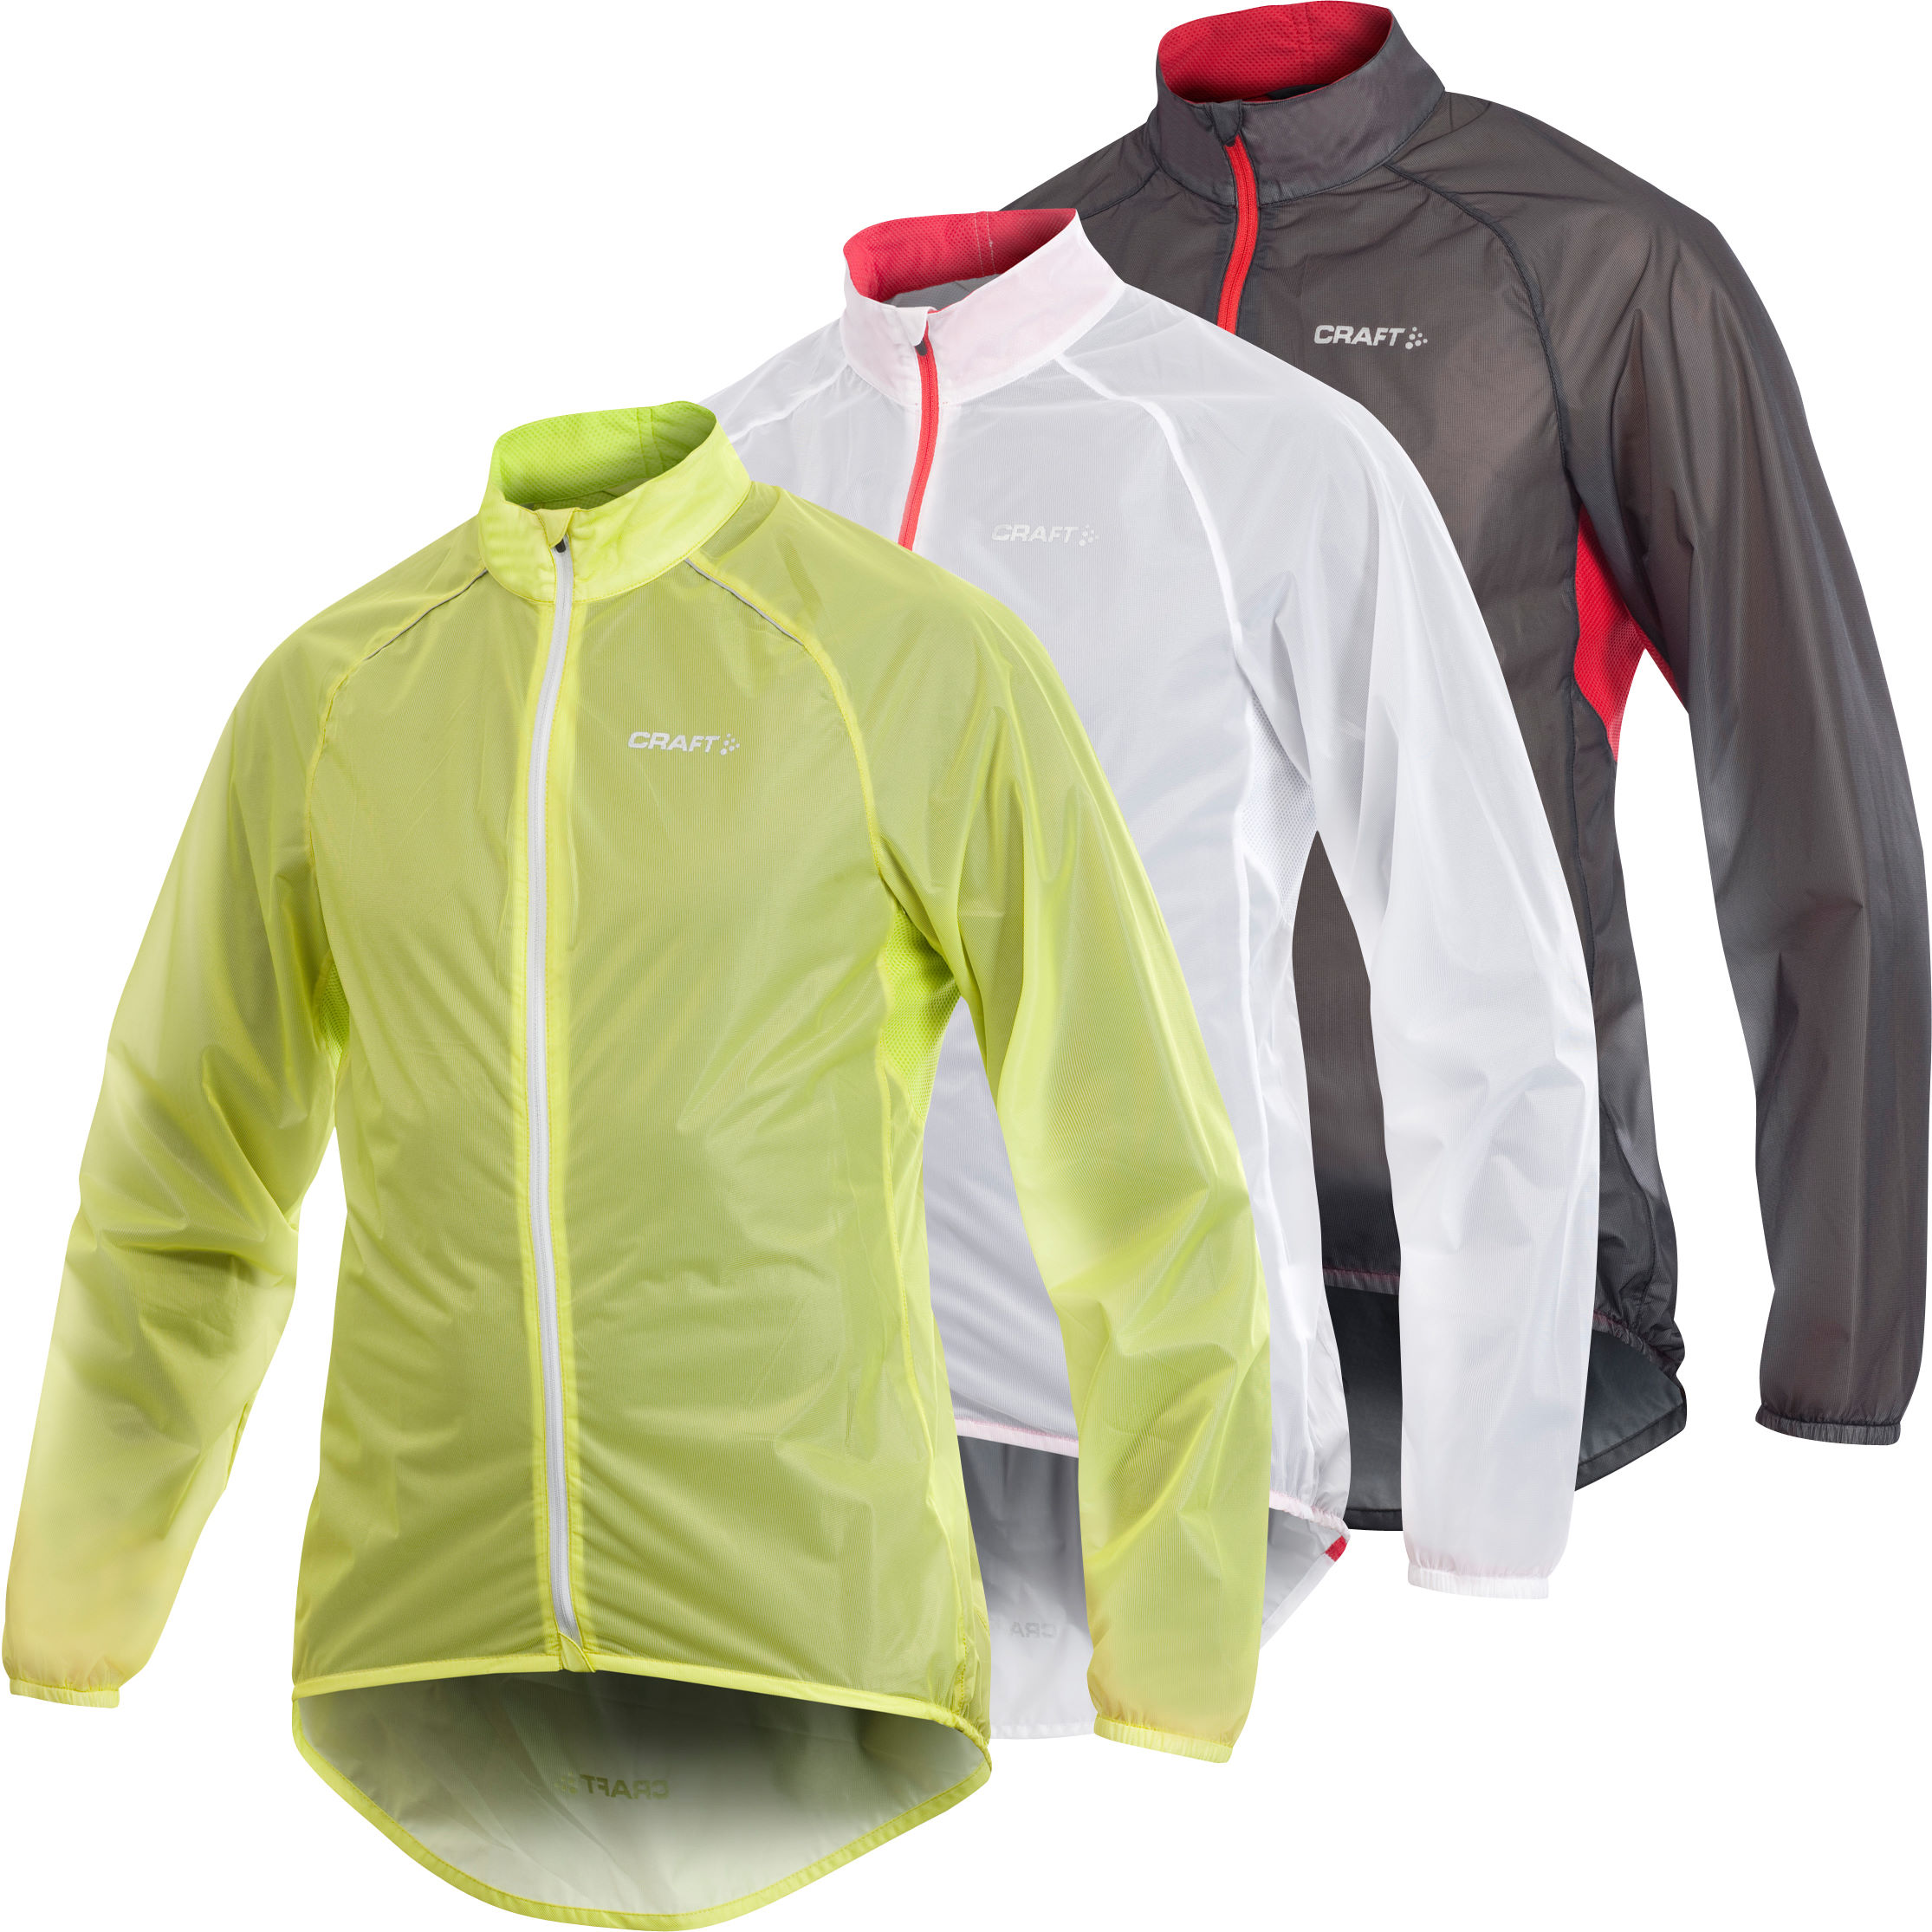 Cycling Rain Jacket iy73guwE